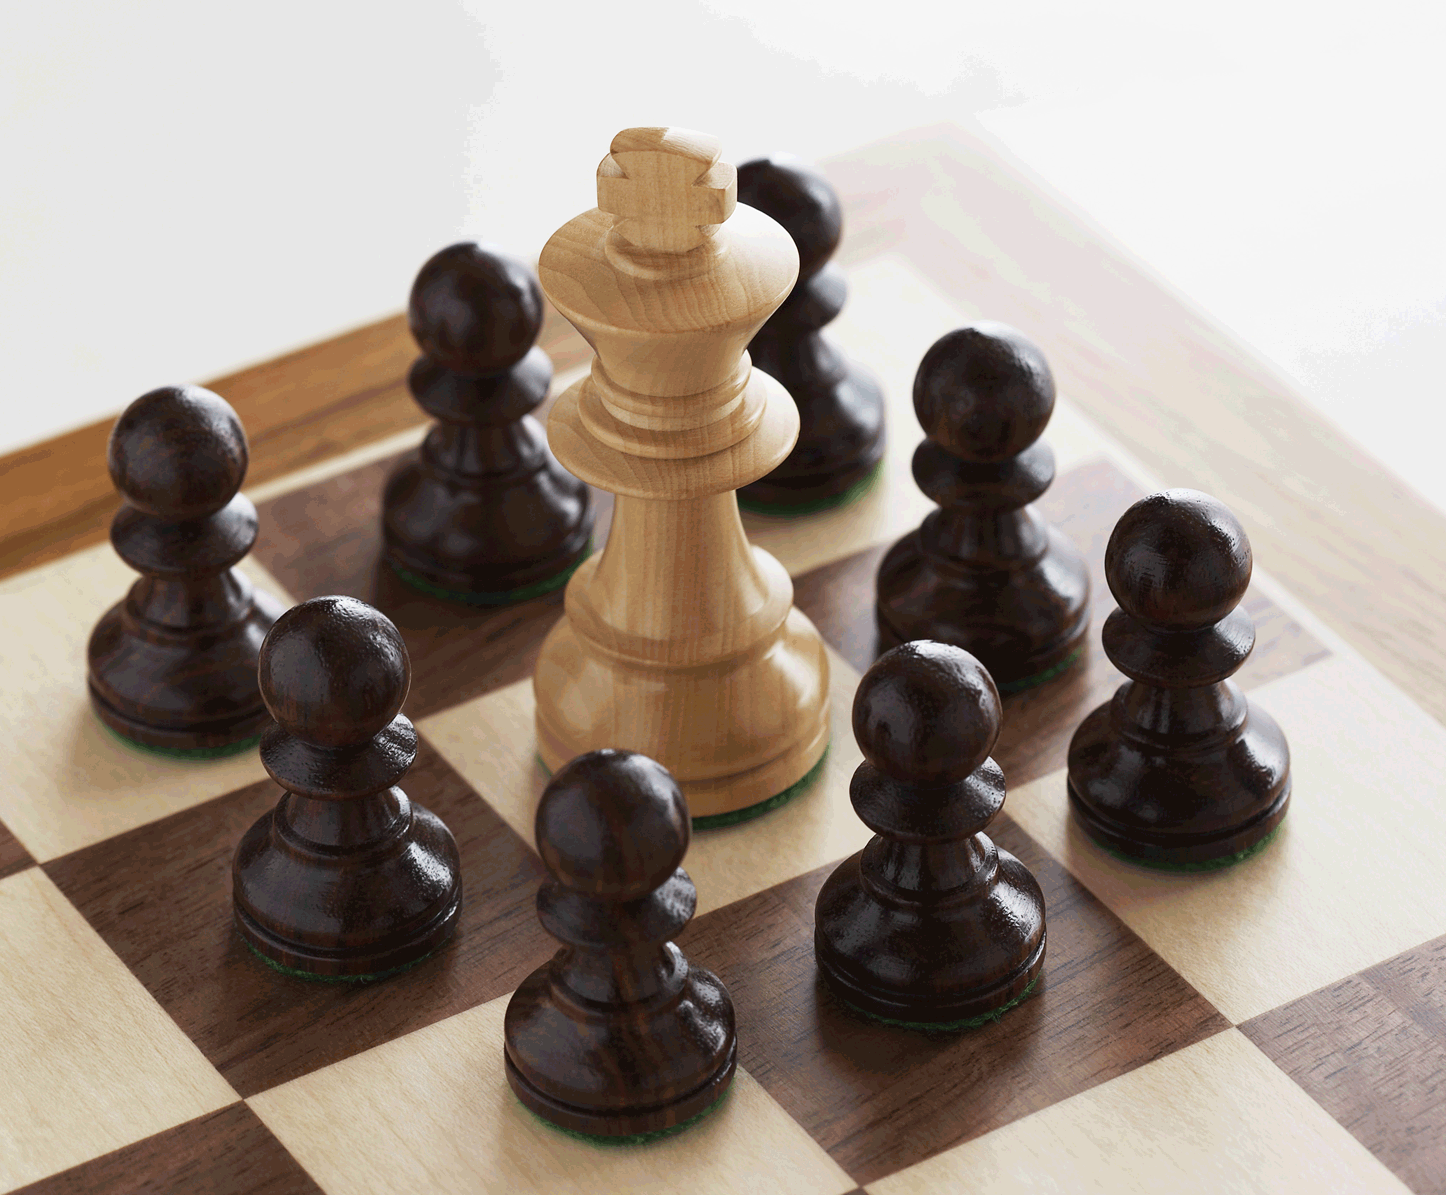 chess board, match in progress